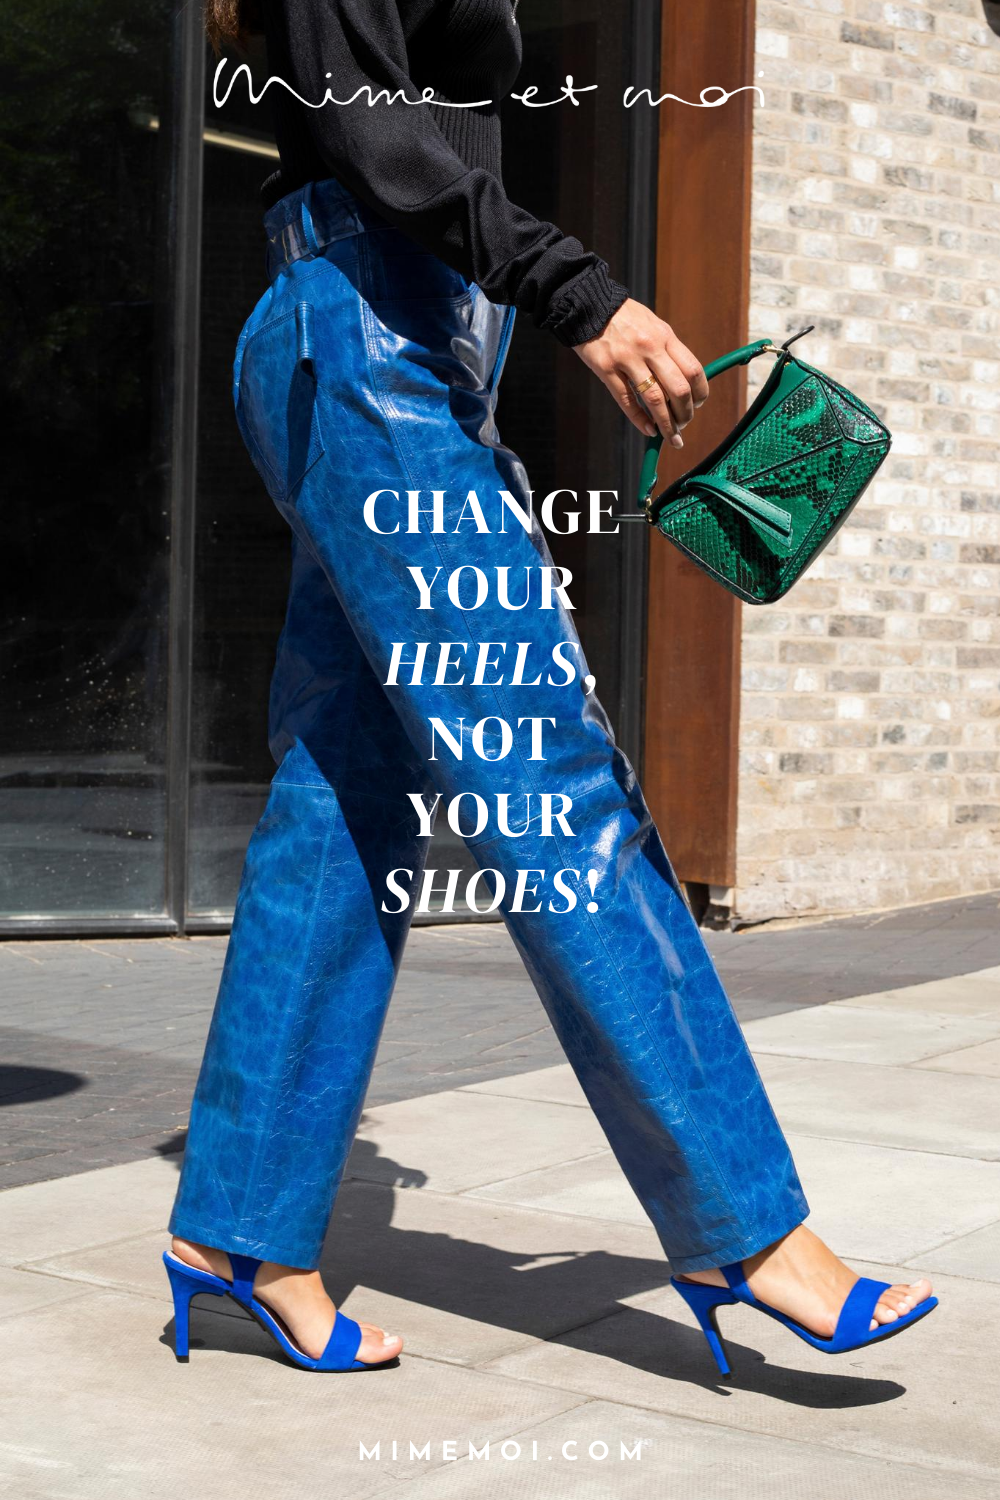 What a dream! No more worrying about wearing the wrong shoes, just ckick on a new heel and off you go. Go with the flow, with Mime et moi heel changing shoes. #heelchanger #mimeetmoi #mimelover #shoelover #changeableheels #pumps #sandals #heels #blockheel #stiletto #flats